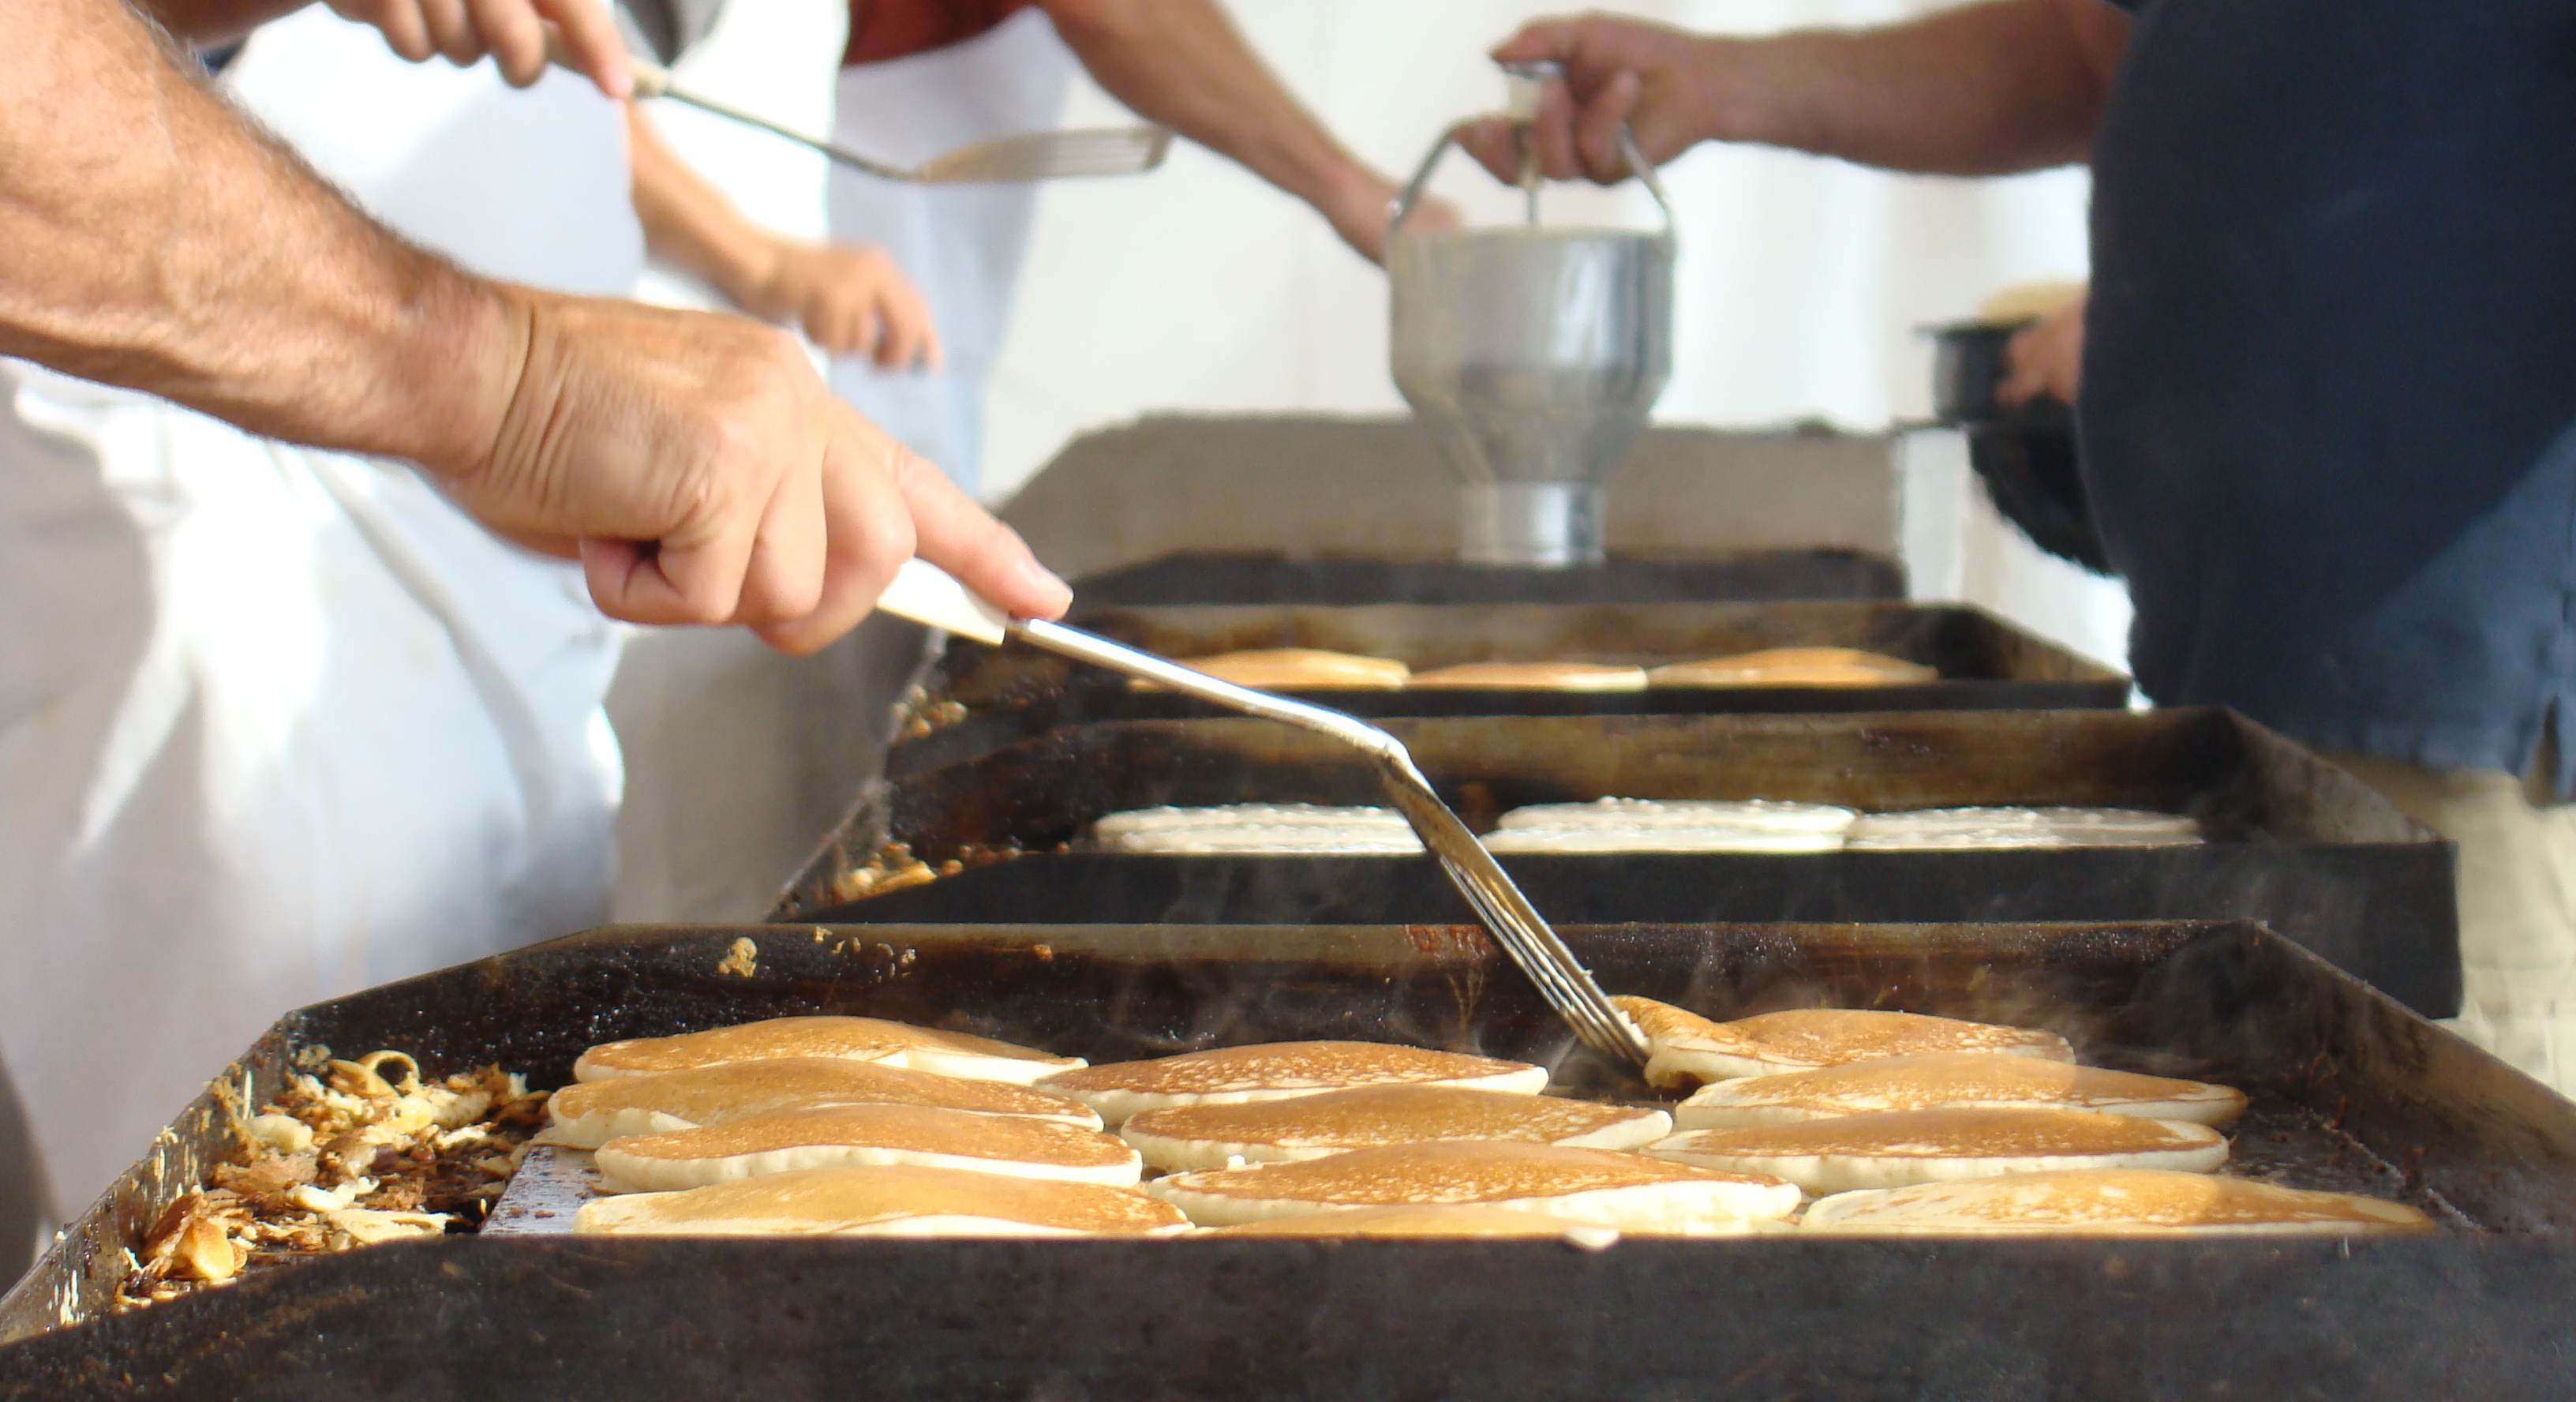 Flipping pancakes at the relief sale